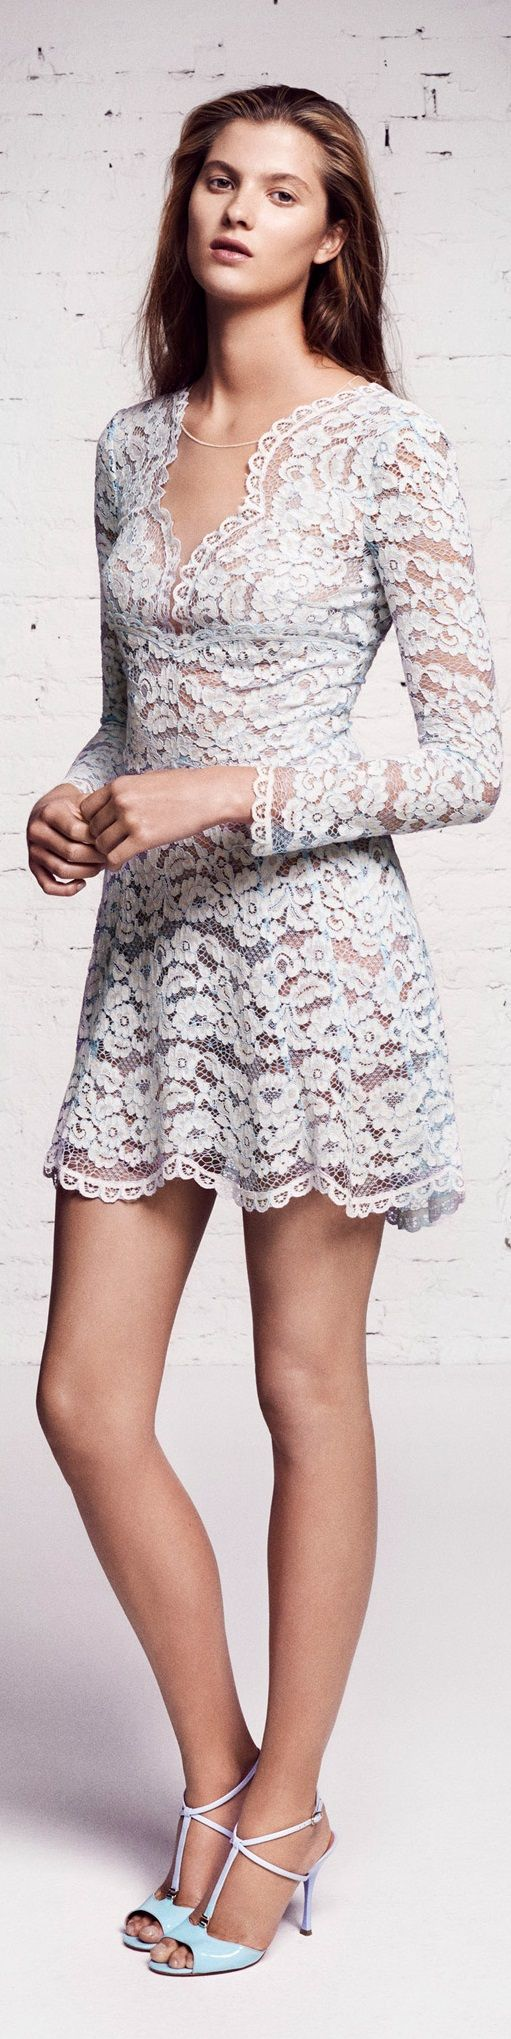 Blumarine resort 2016